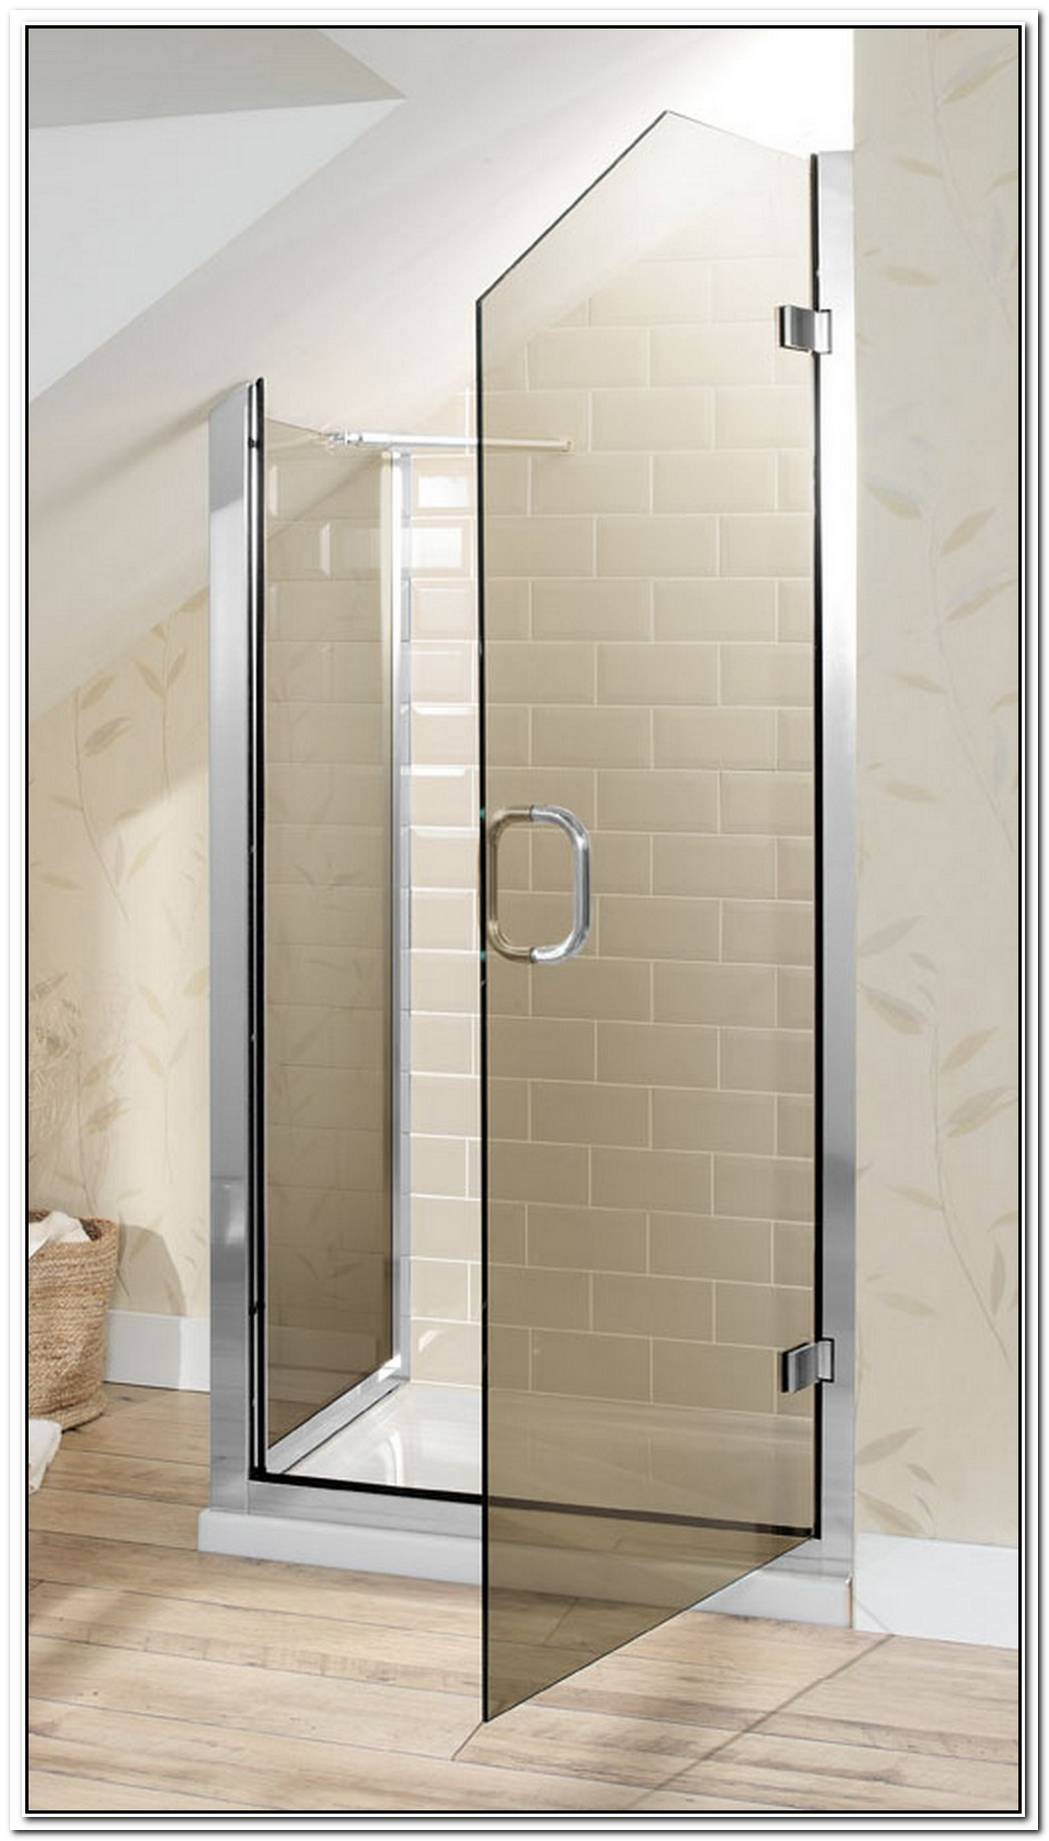 Loft Bathroom Shower Enclosure